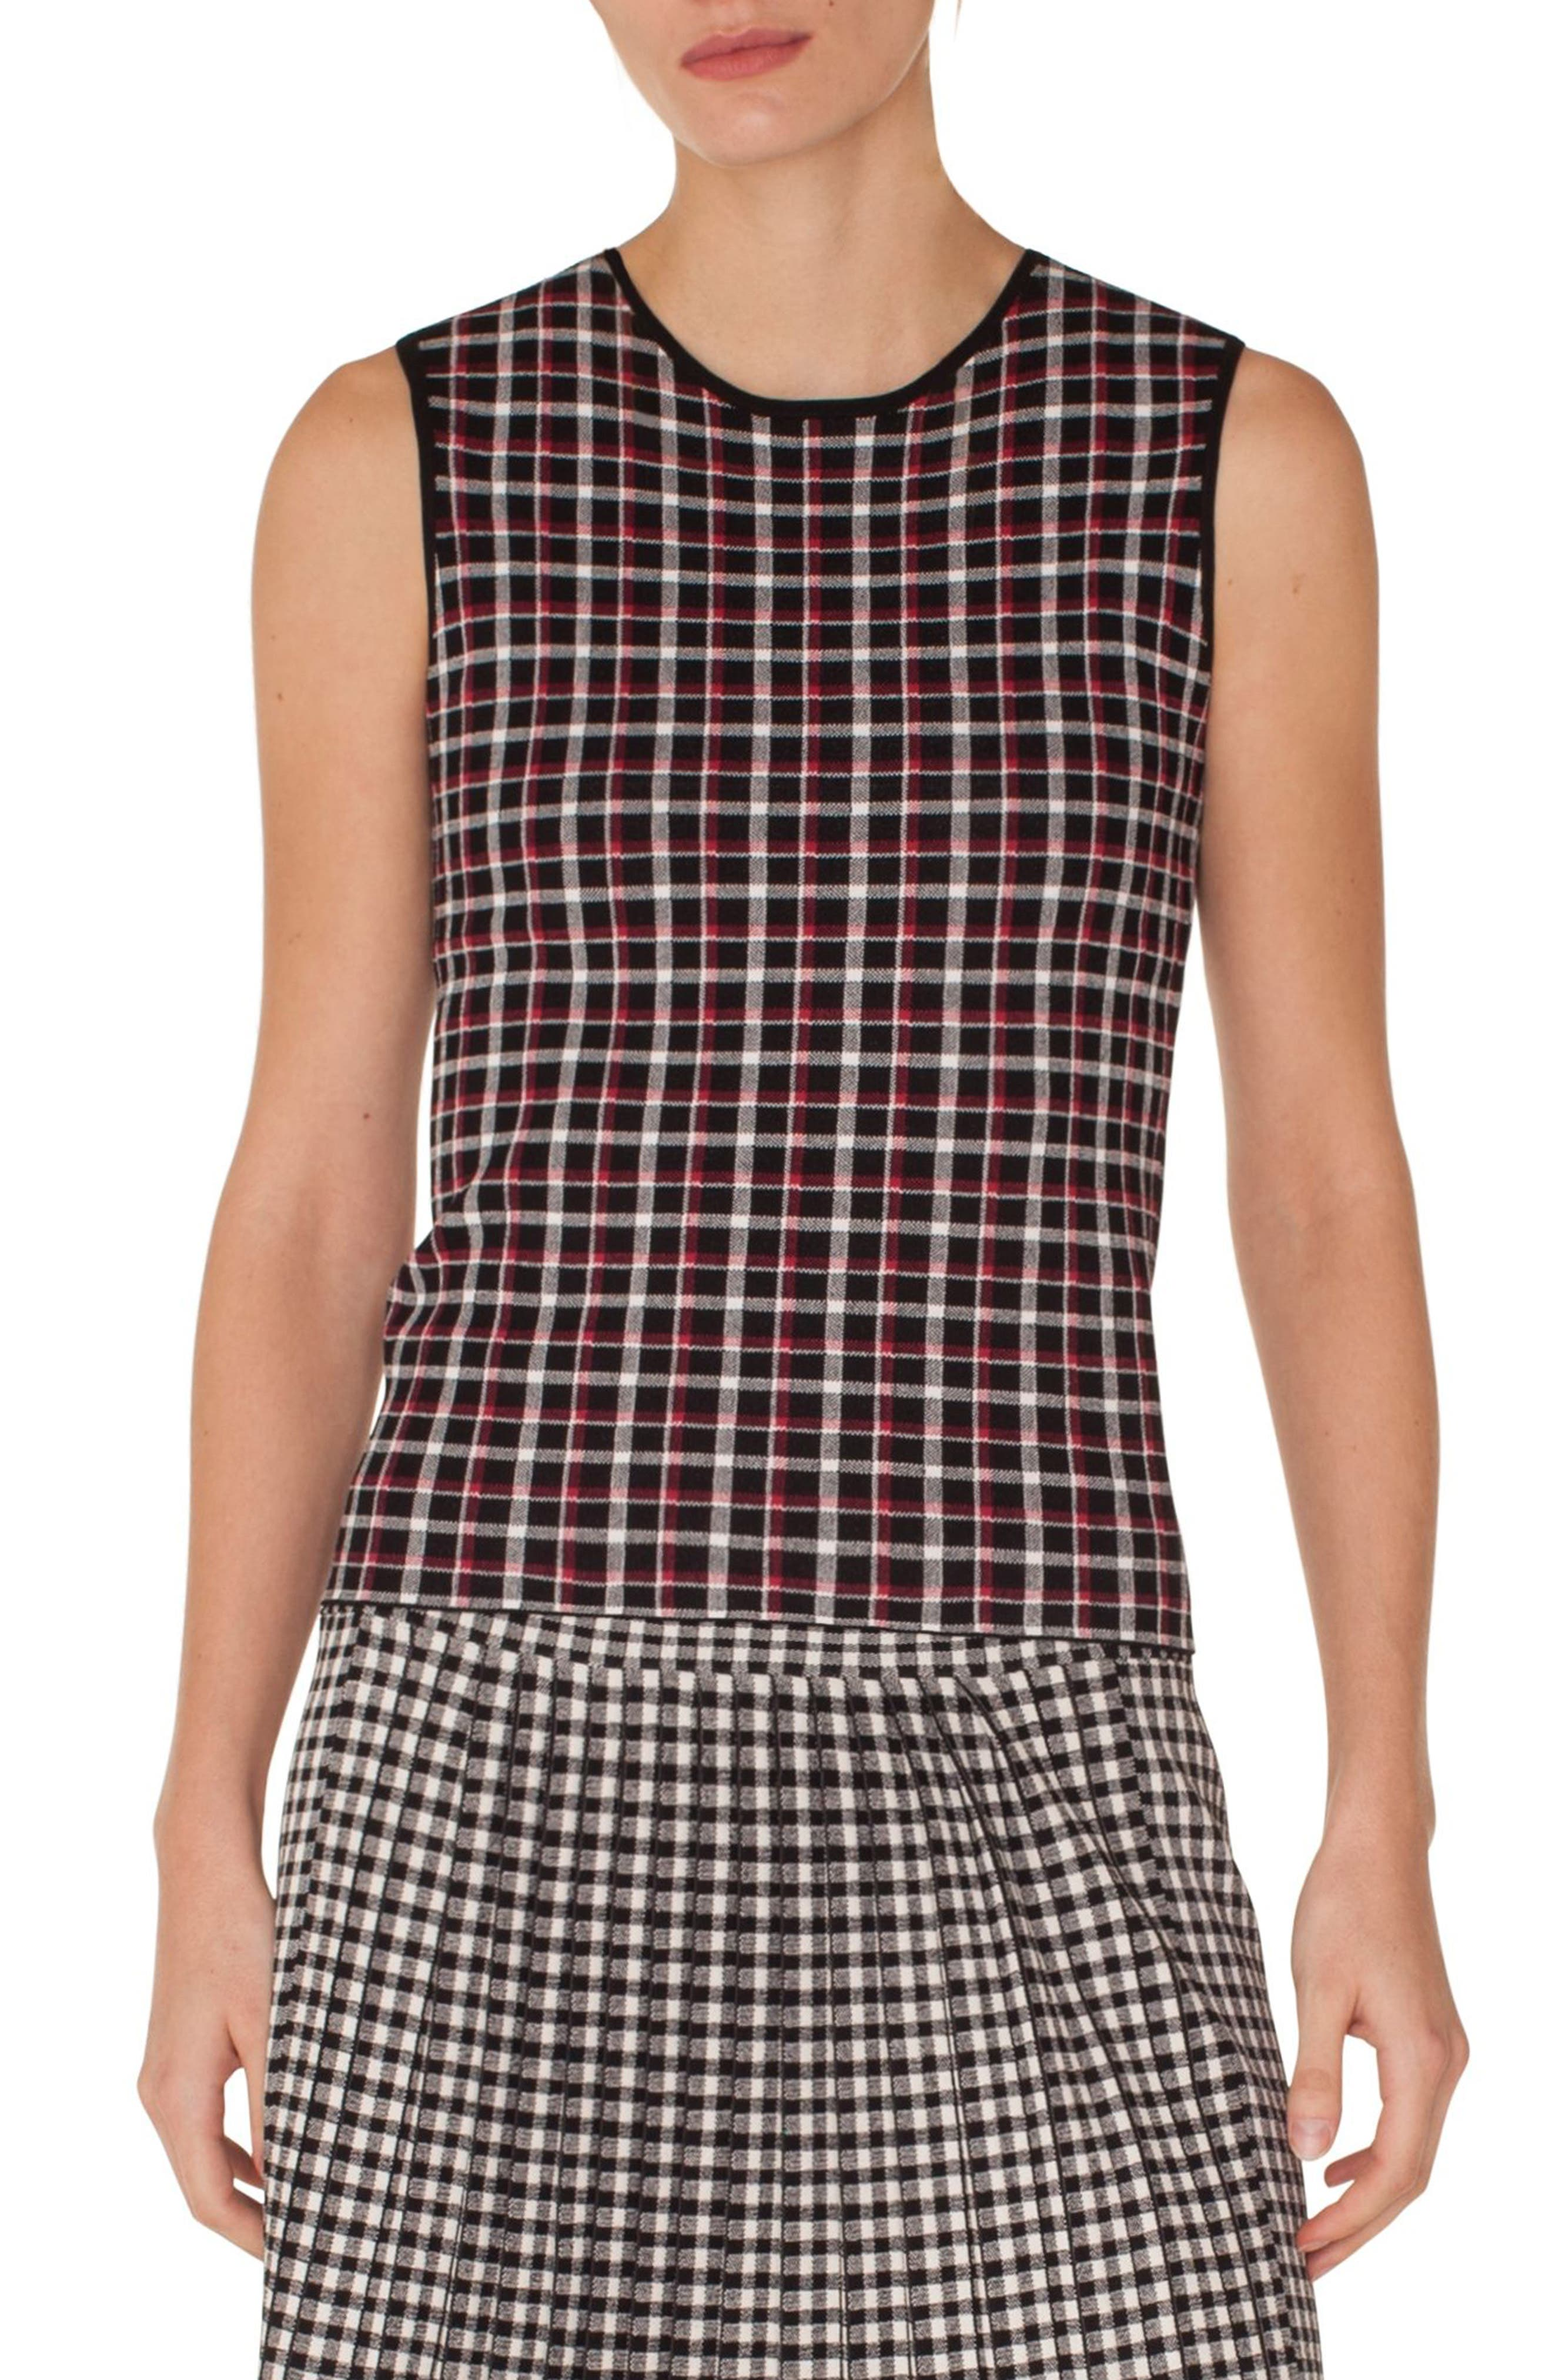 AKRIS PUNTO Sleeveless Round-Neck Glen Check Back-Zip Knit Top in Black-Lipstick-Cream